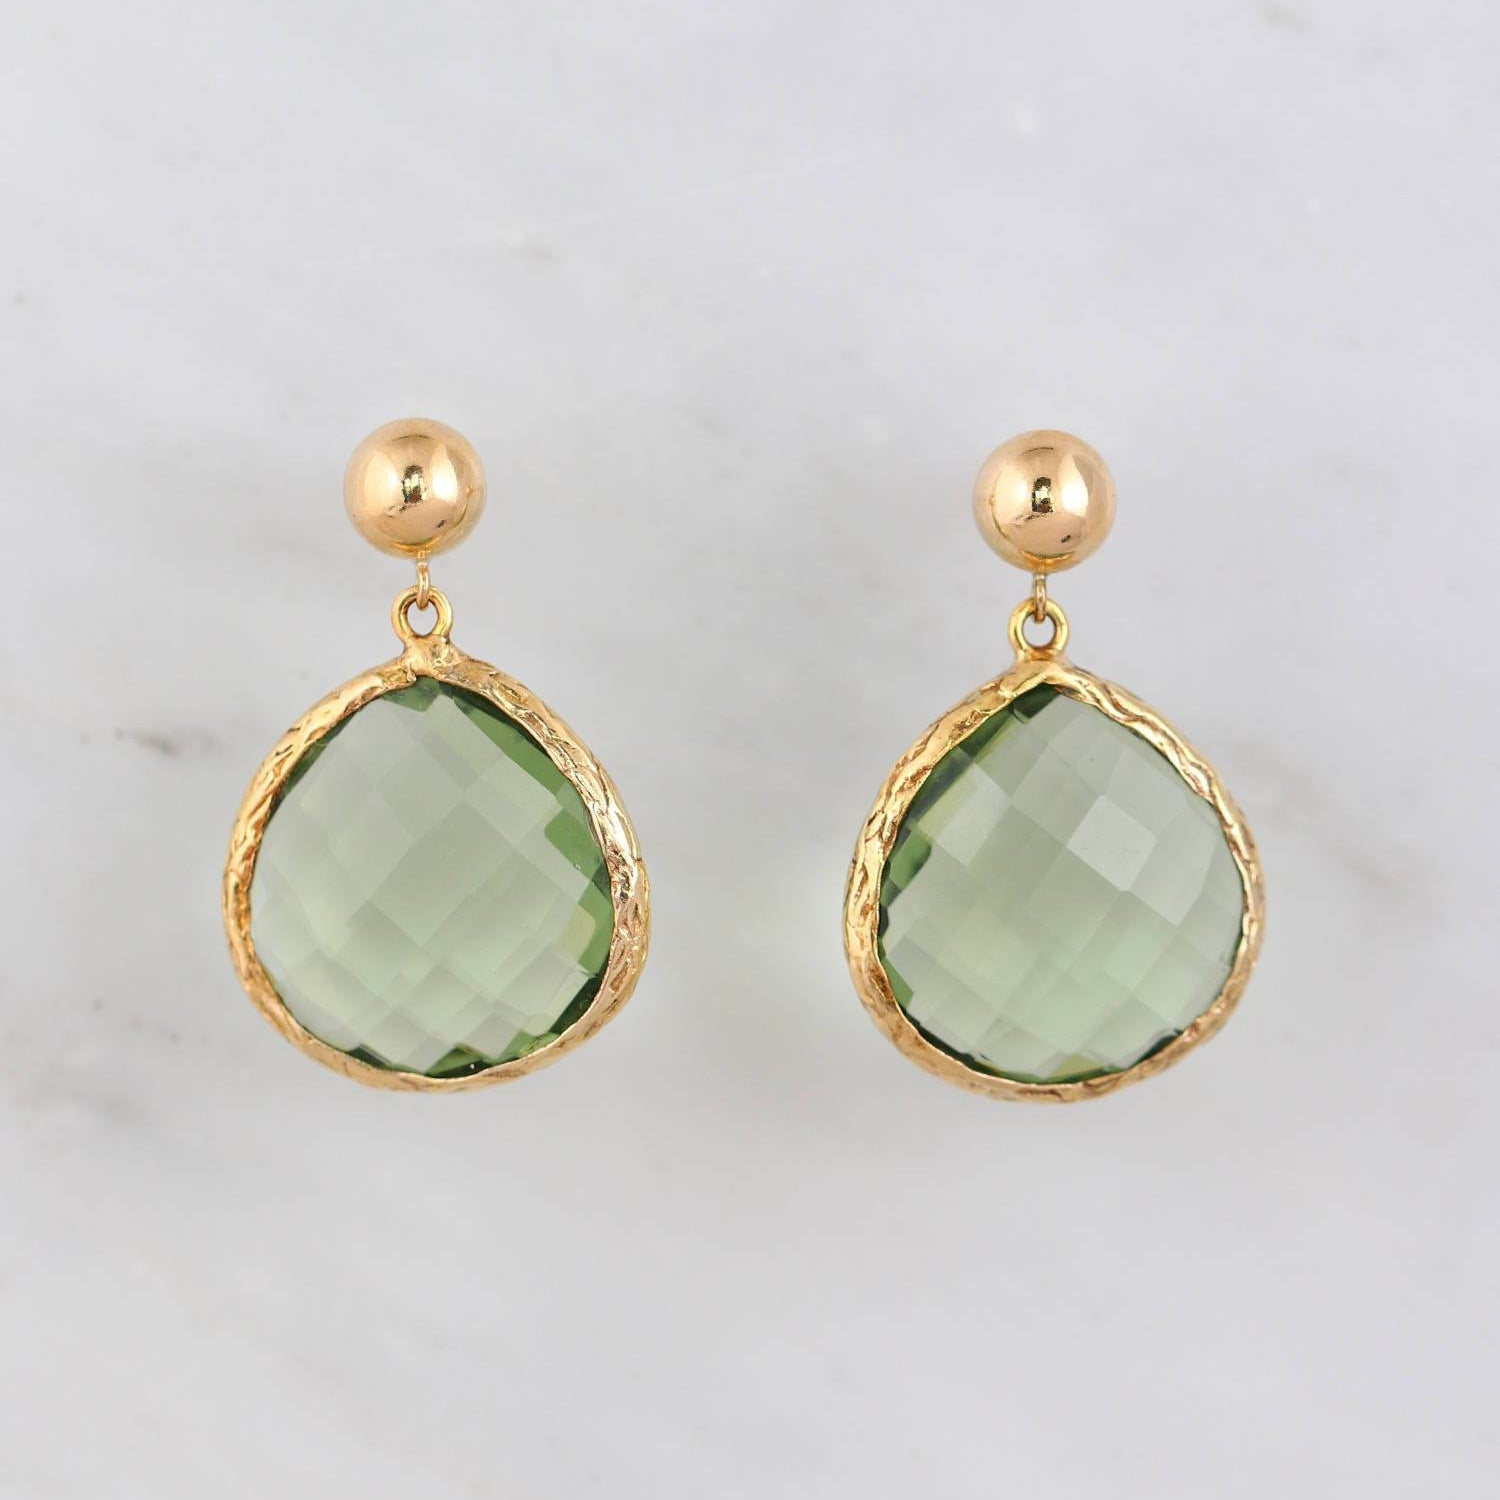 b0674ff1d Pear Shape Earring, Gemstone Earring, Green Amethyst, Natural Stone,  Elegant Textured Earrings